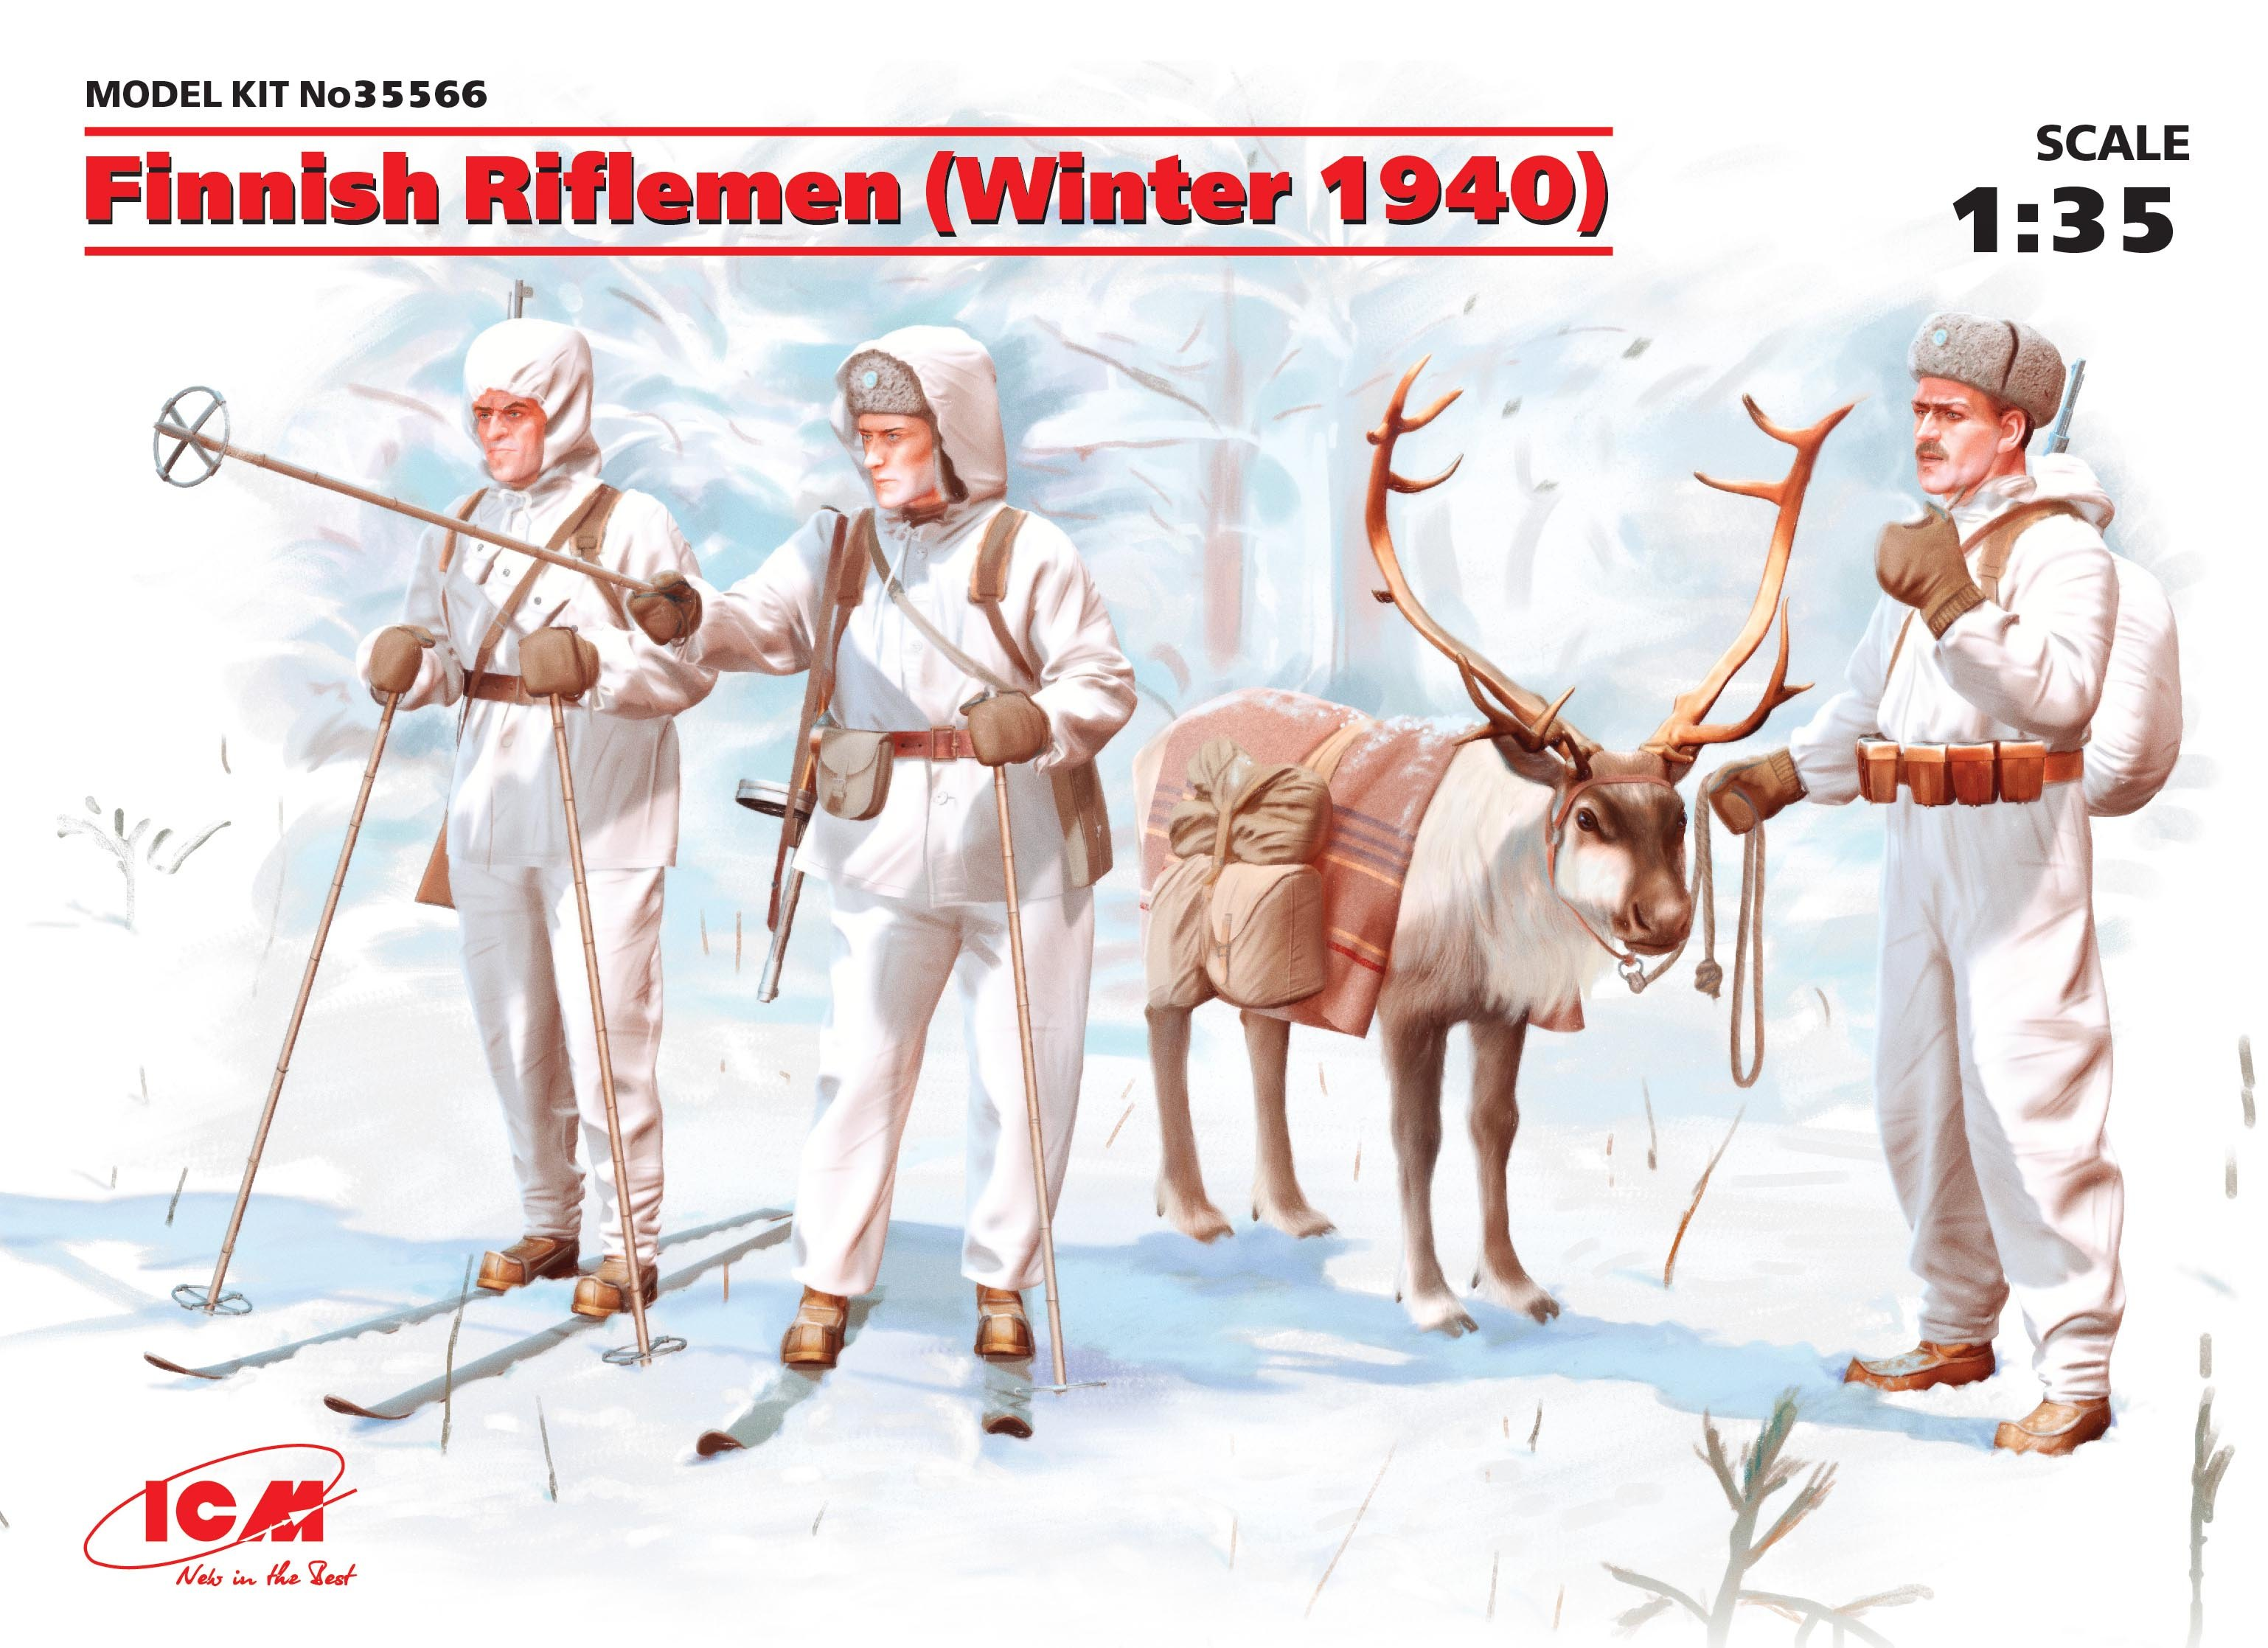 ICM Finnish Riflemen (Winter 1940) (4 figures - 3 rifleman, 1 reindeer)